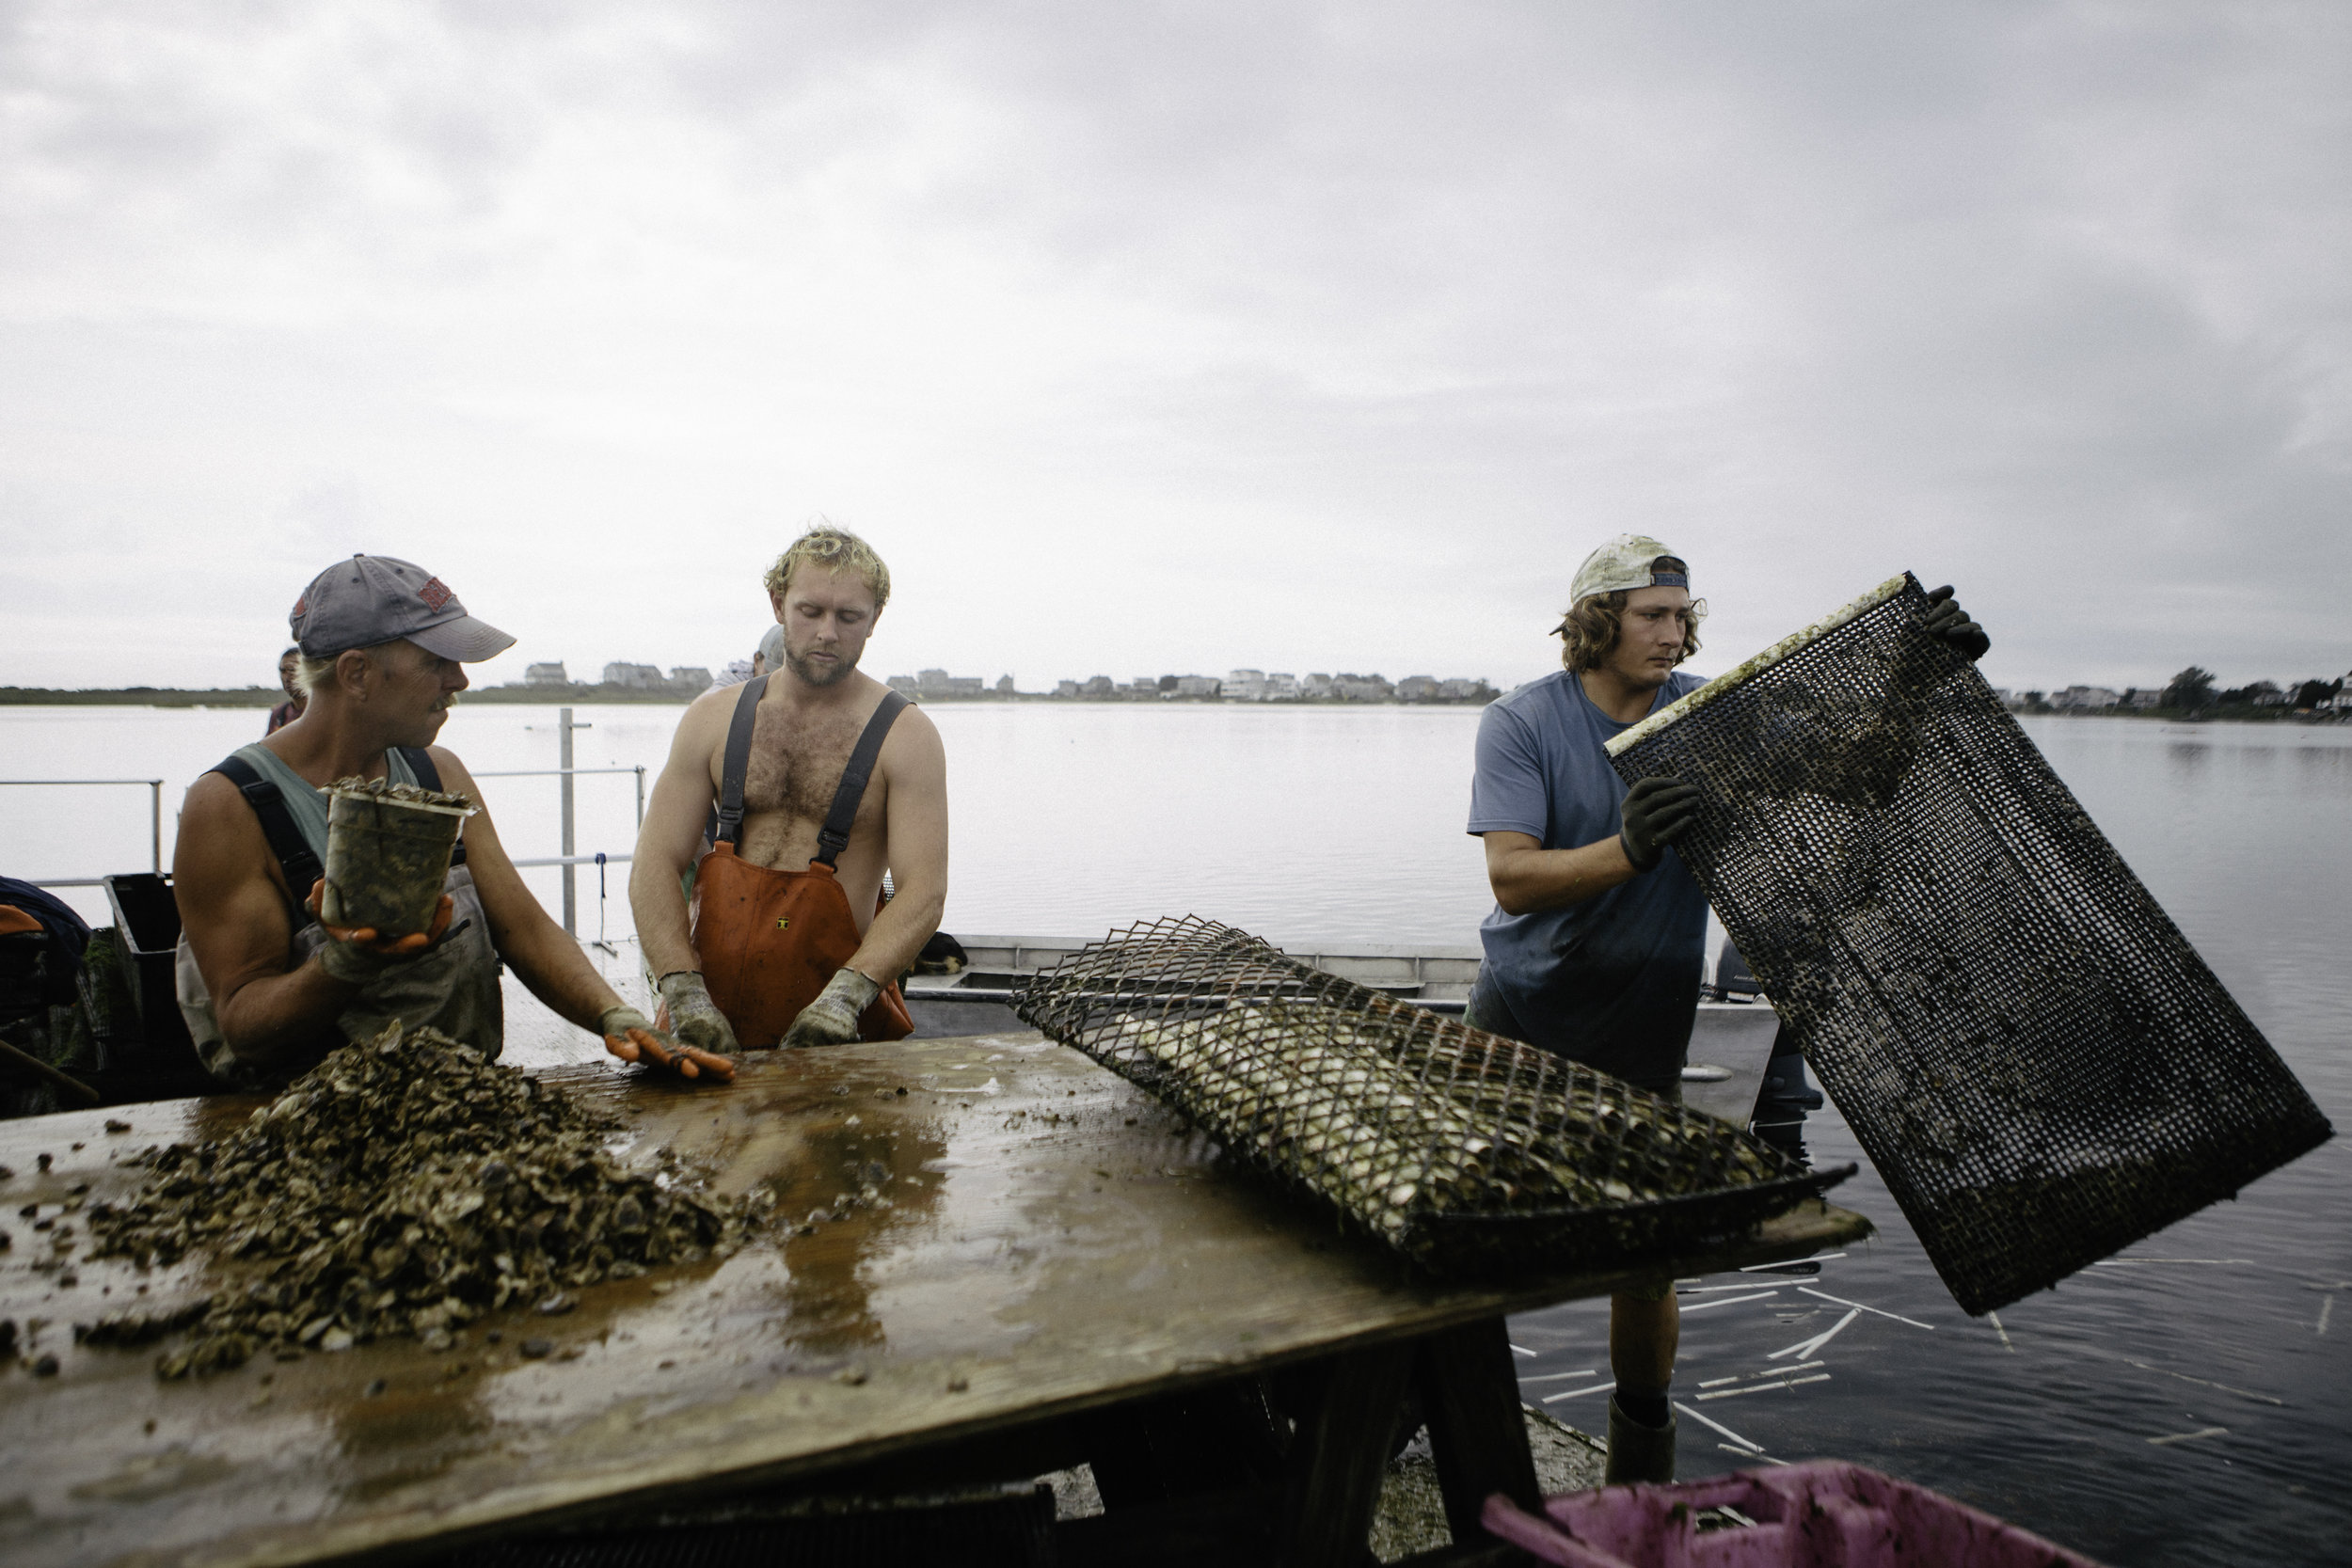 The barge crew take out six month old oysters from the cages. They redistribute them at a lower density as they get bigger.Oysters take about three years to reach market size.